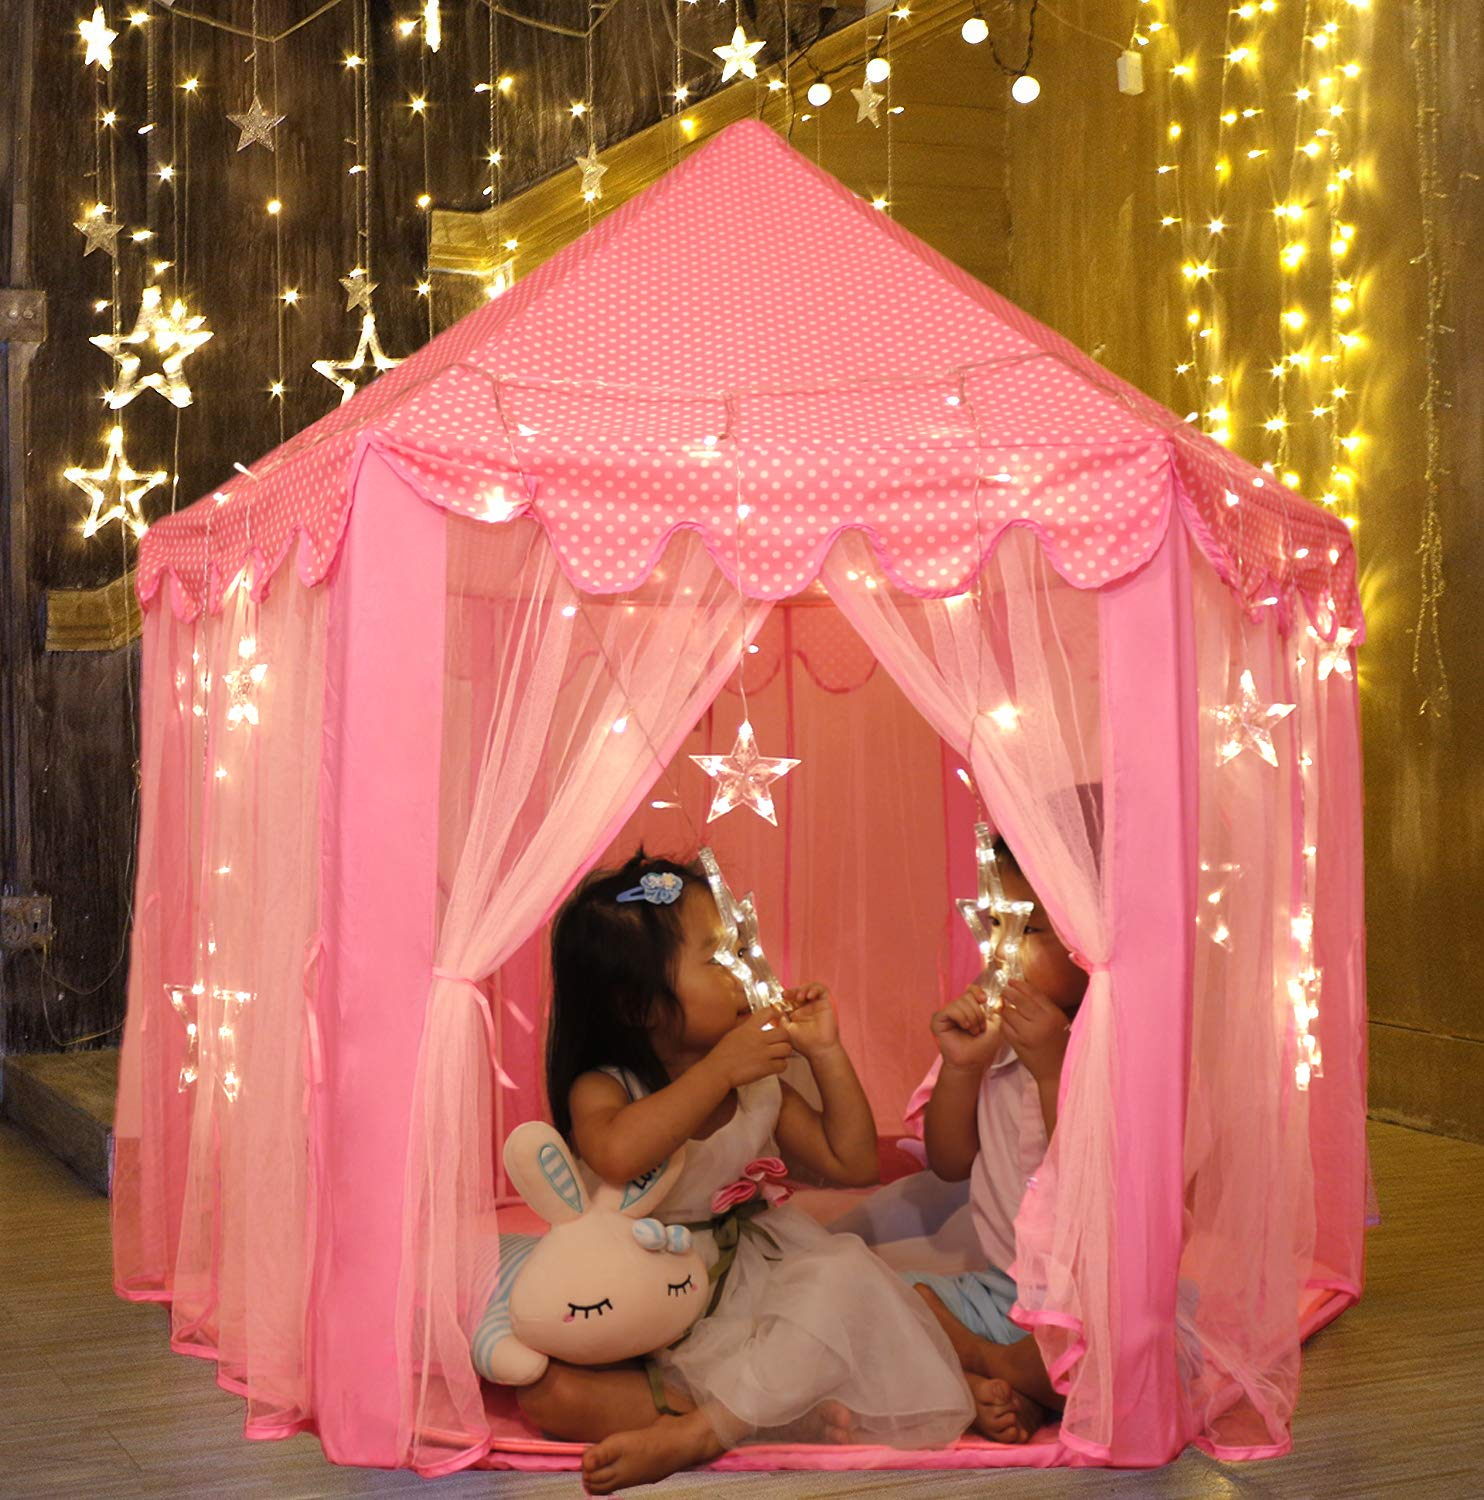 Sumerice Kids Play Tent Large Indoor and Outdoor Hexagon Princess Castle Tent Fairy Playhouse for Girls, Boys, Children (Pink)